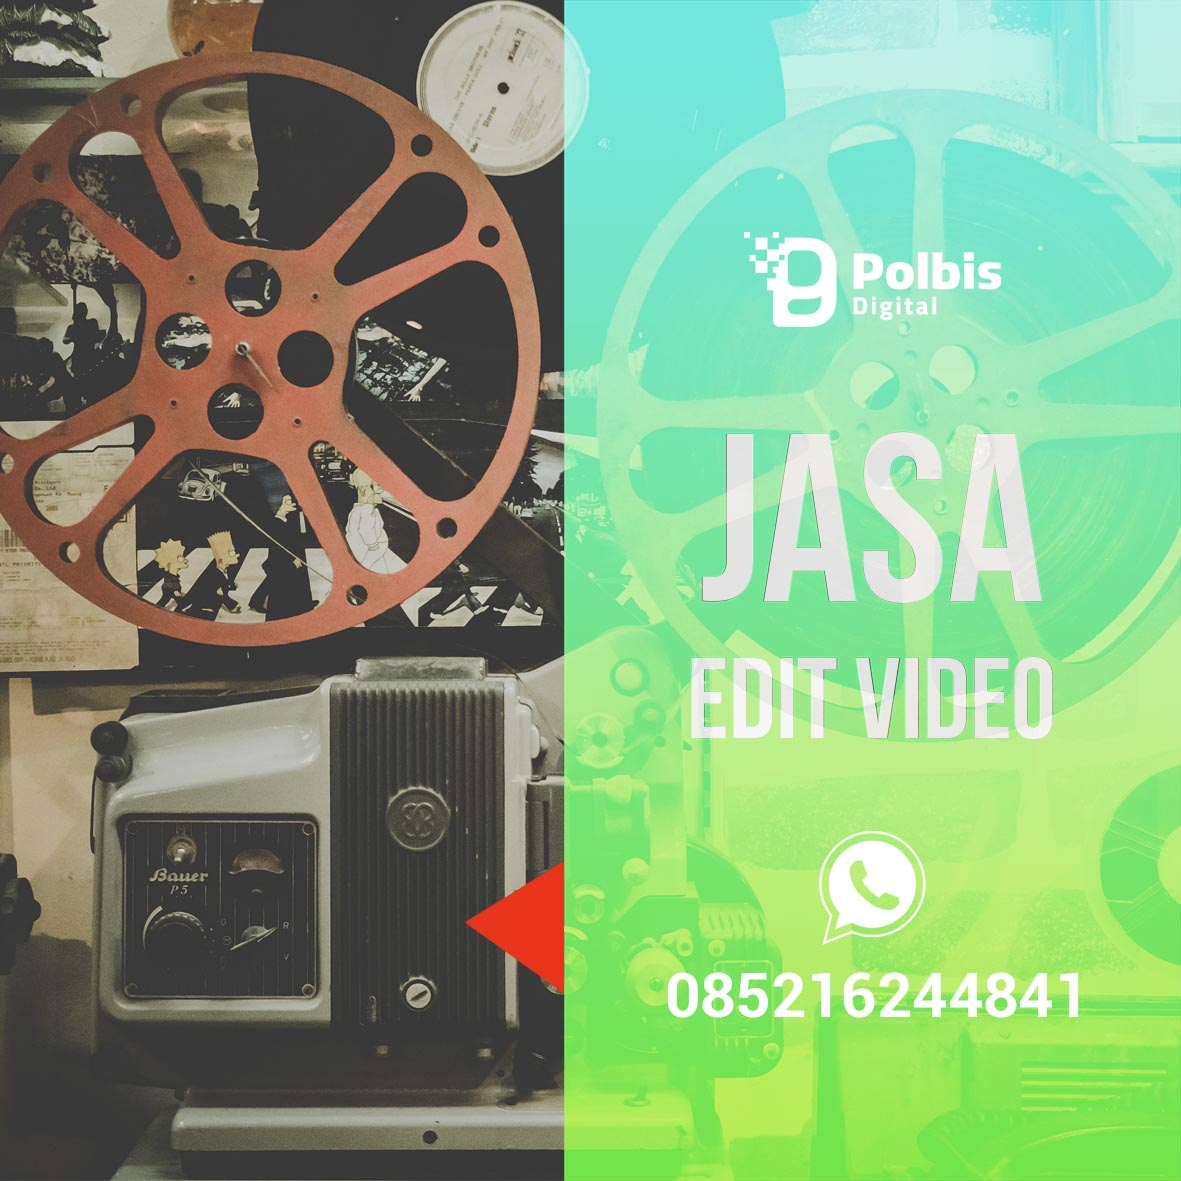 JASA EDIT VIDEO MURAH DAN BERKUALITAS DI BANJARMASIN